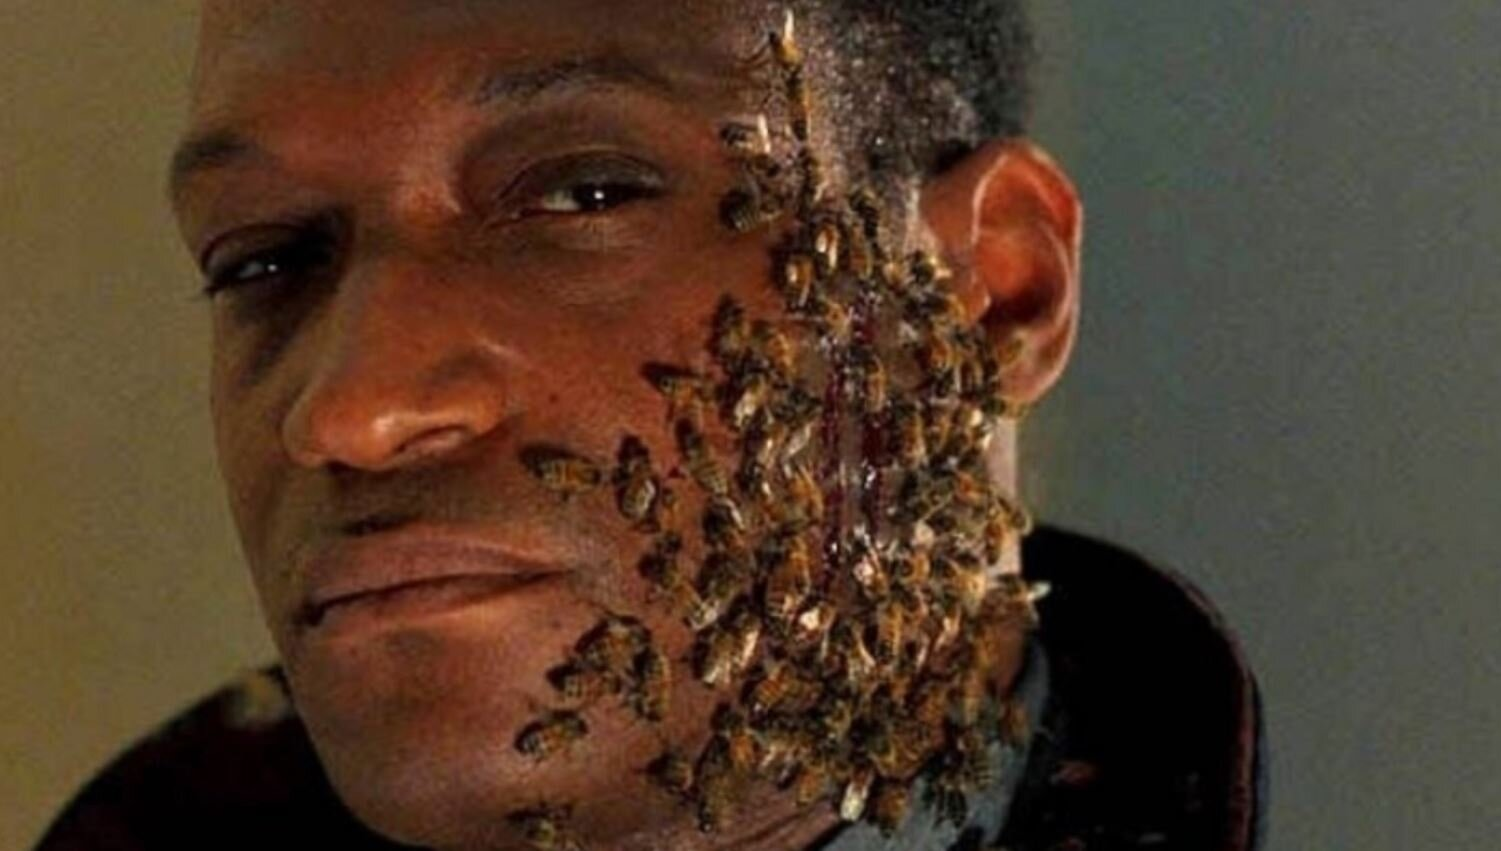 """- Twenty five years before Get Out was released, Candyman (1992) managed to highlight the horror that exists in America's racial and socio-economic disparities. While perhaps a bit unfocused and problematic by today's standards, this movie's excellent cast, sleek cinematography, and uncommon score conjure a mature and captivating spell that still manages to shock and disturb us today. Join us for an episode that includes Matt coming for Shonda Rhimes, Ryan doing some """"good"""" troll work, and a whole hive's worth of bee material, this week on Ex Rated Movies!"""